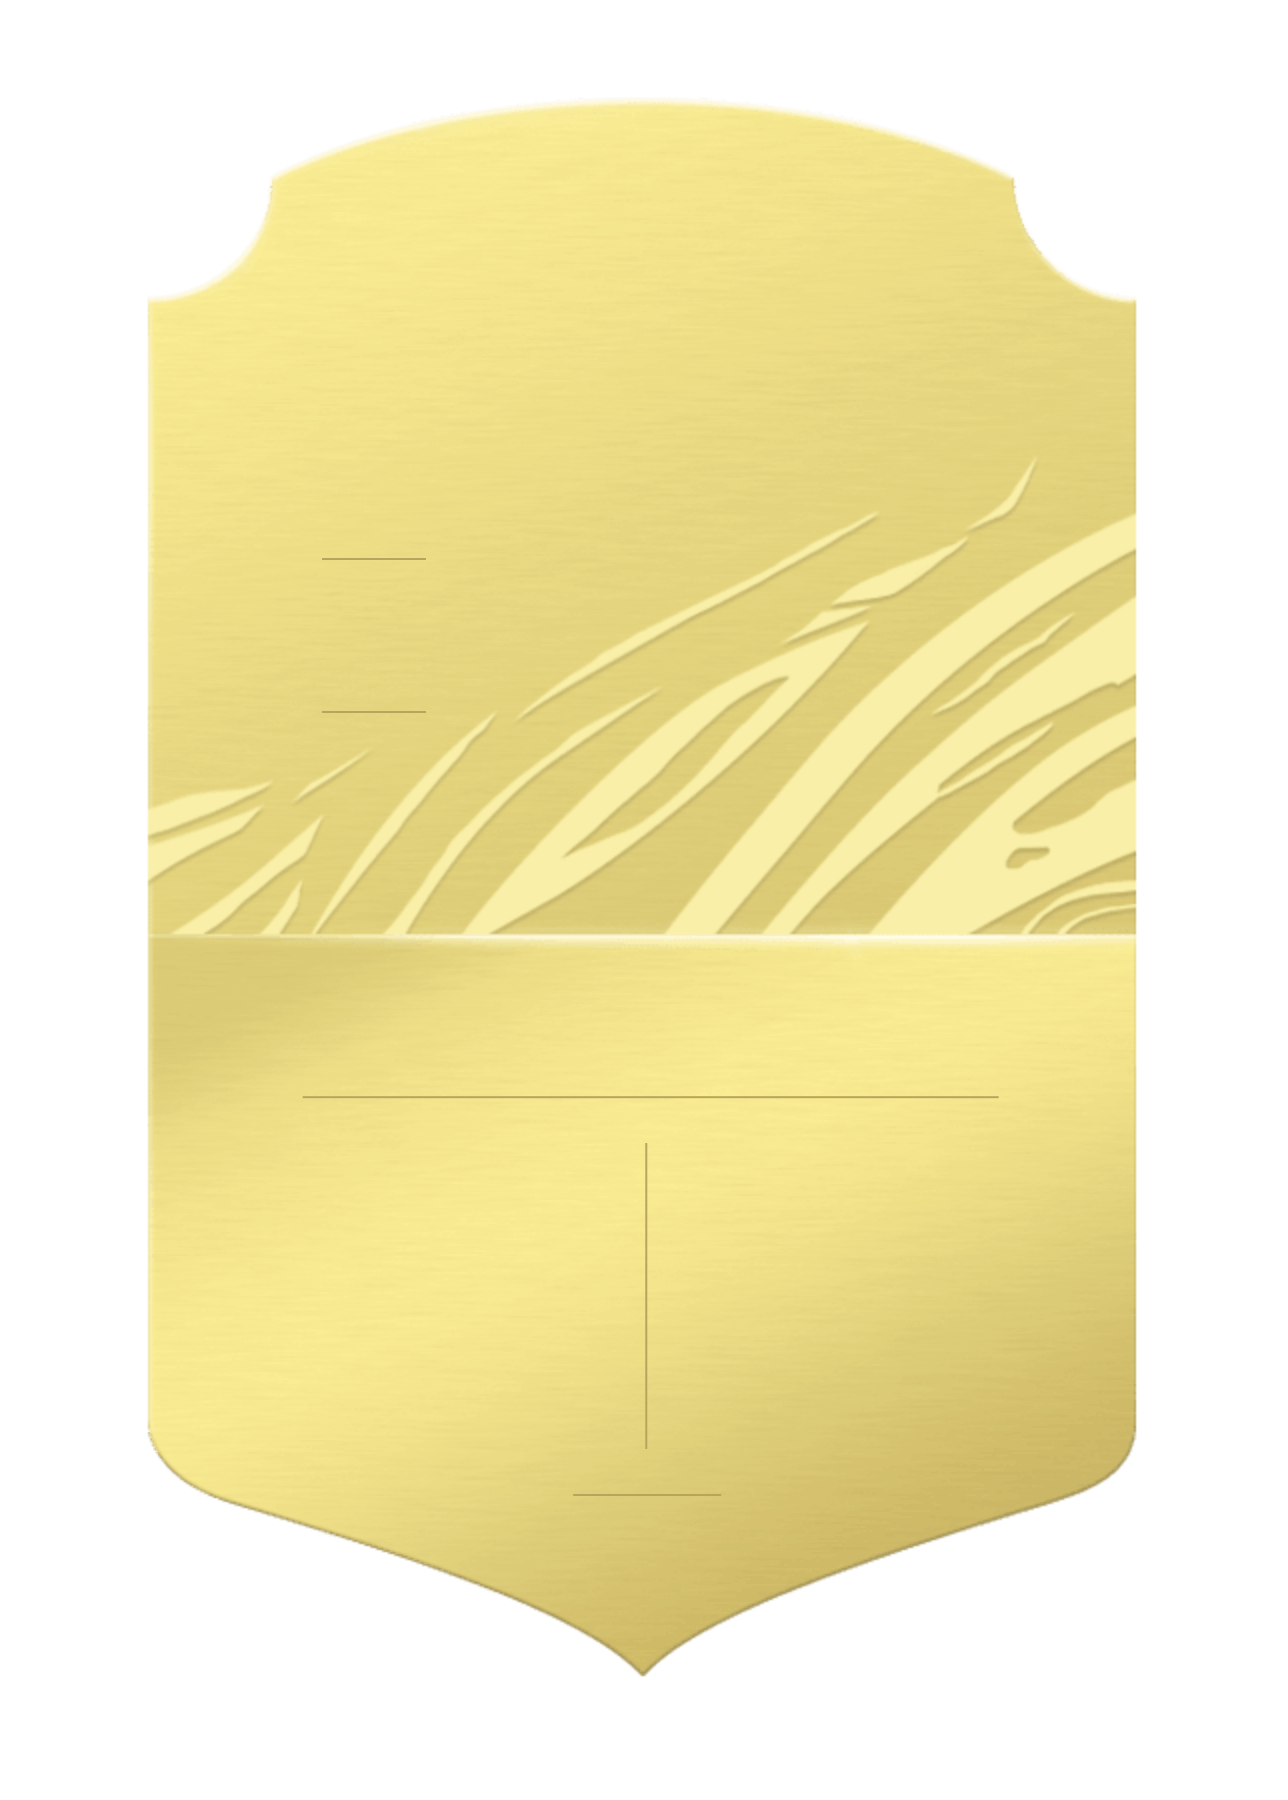 FIFA 21: official Gold card design